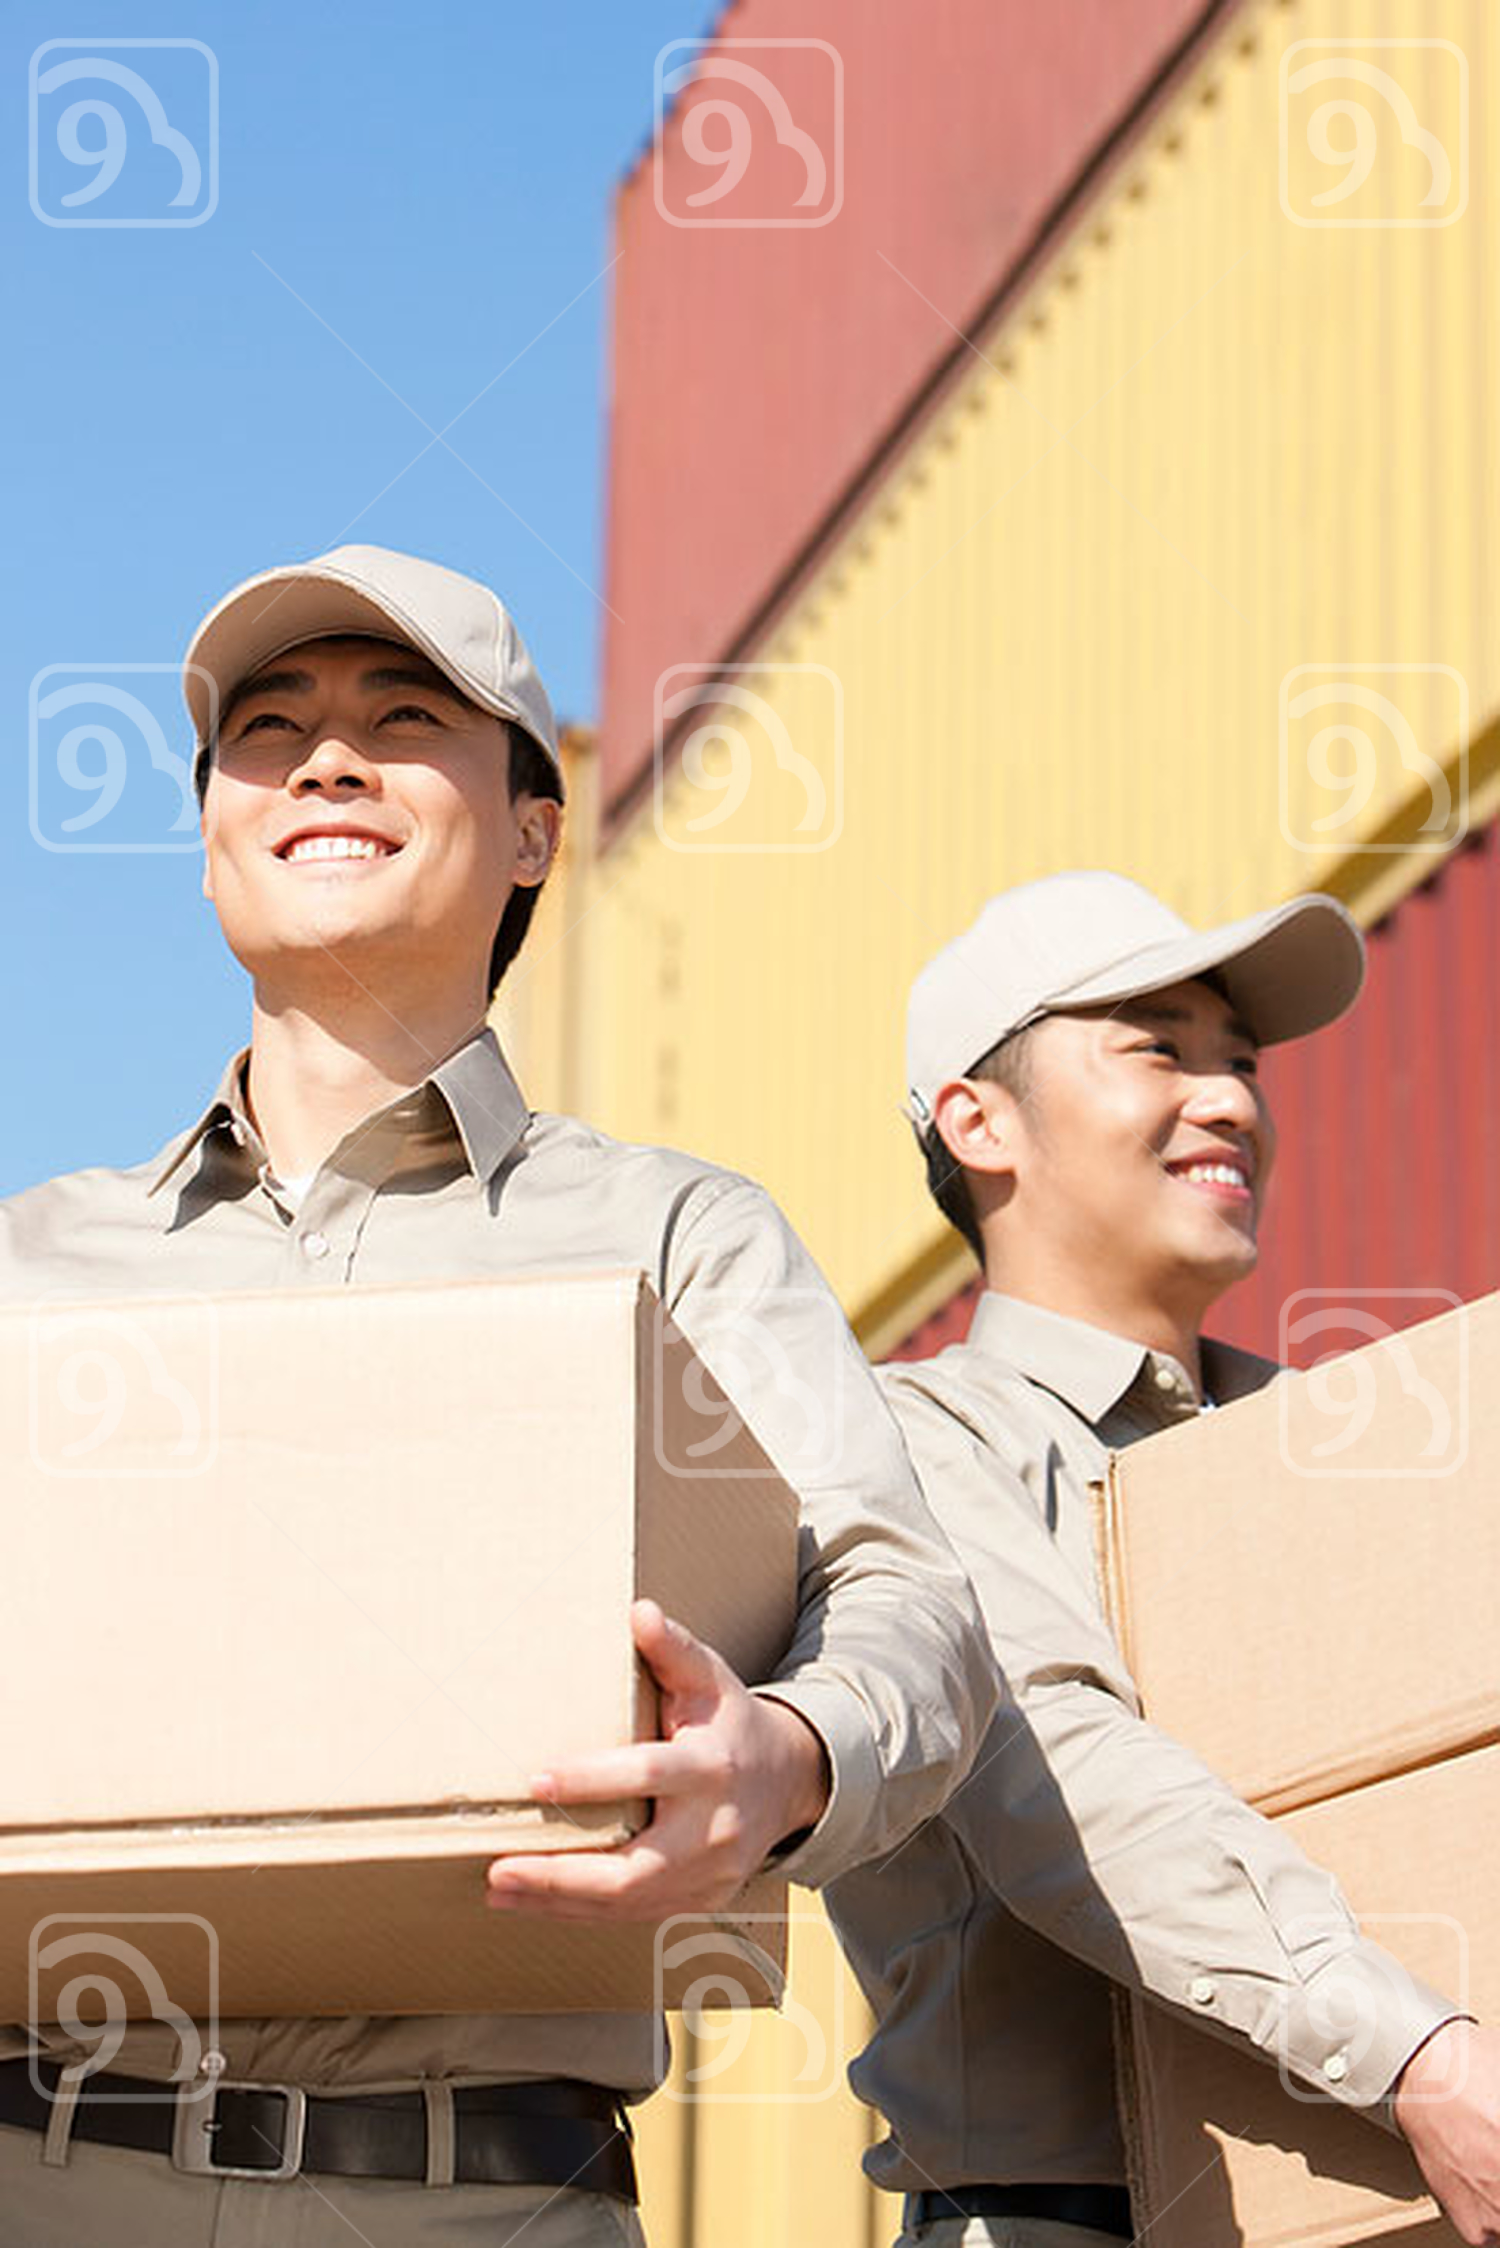 Chinese shipping industry workers carrying cardboard boxes